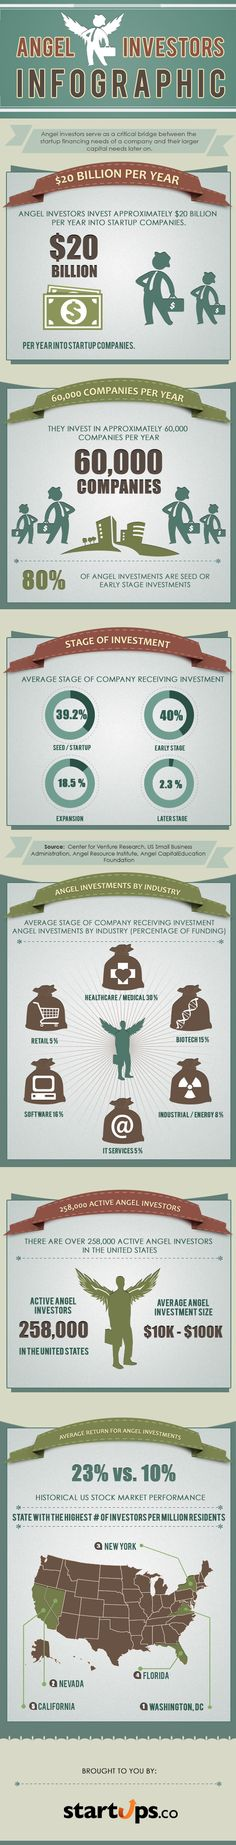 Angel investors put $20B a year into startups (infographic) | VentureBeat